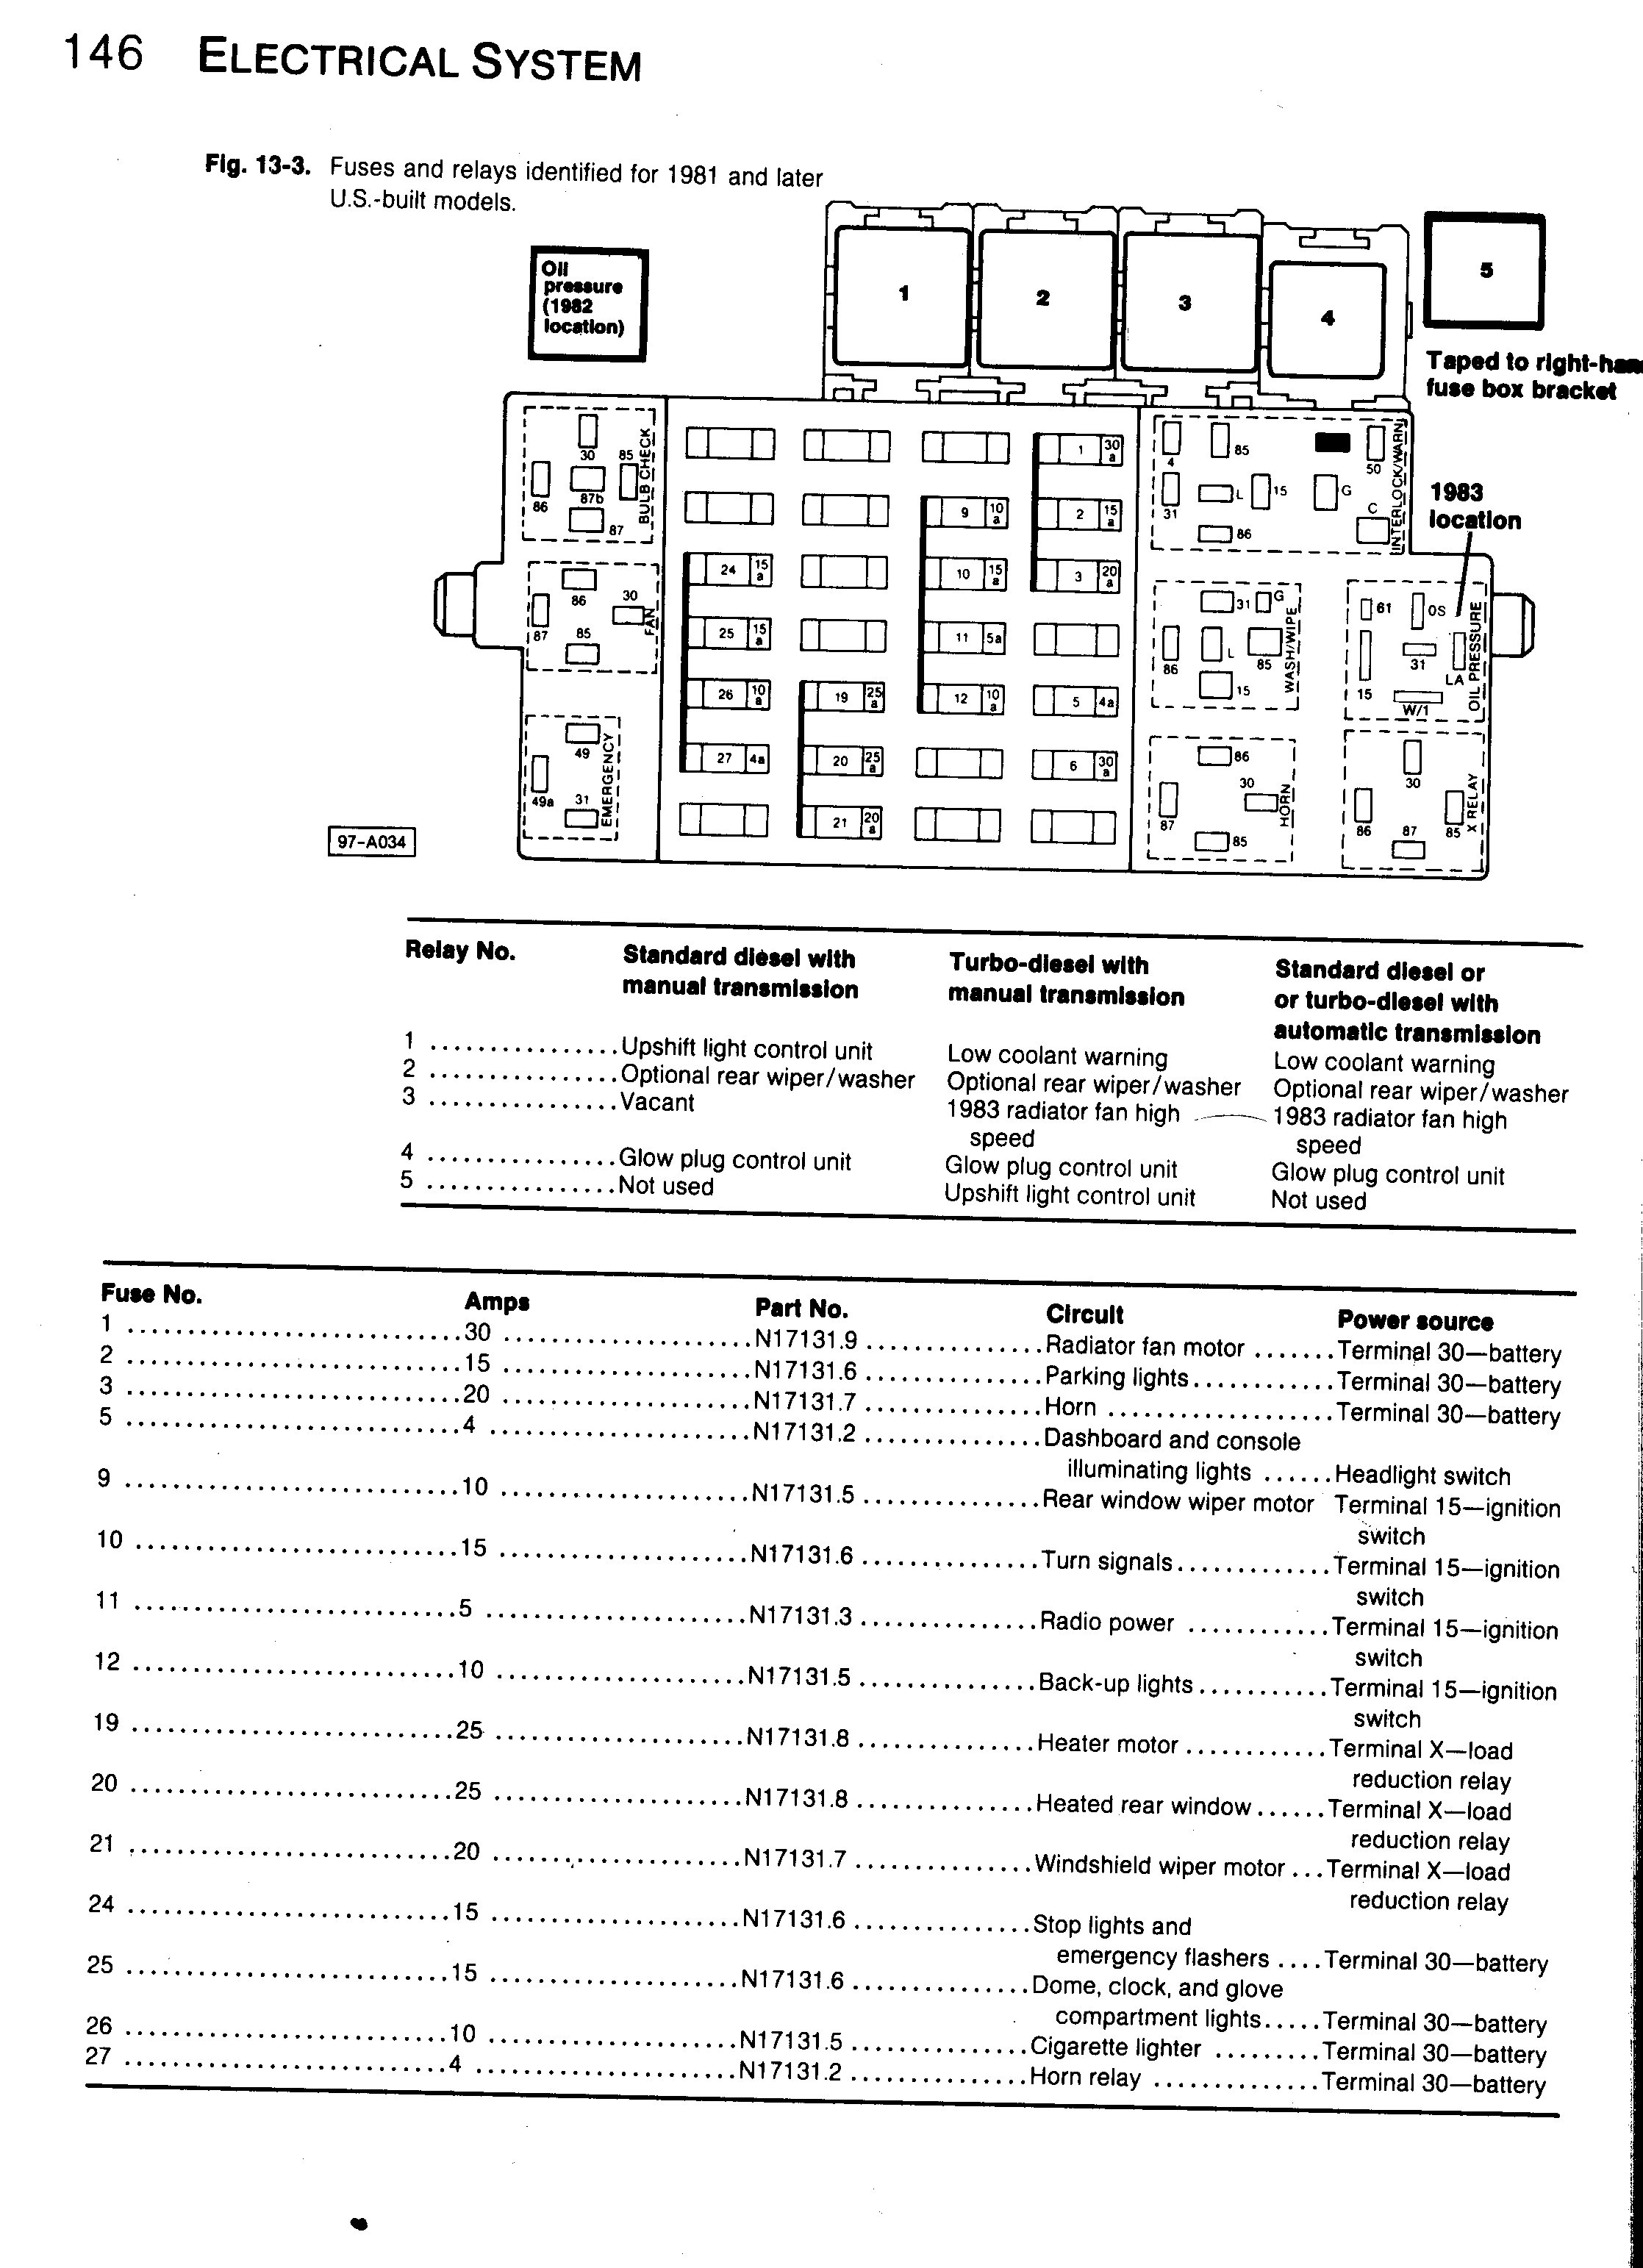 Volkswagen Eos Electrical Diagram on 2000 Audi A6 Fuse Box